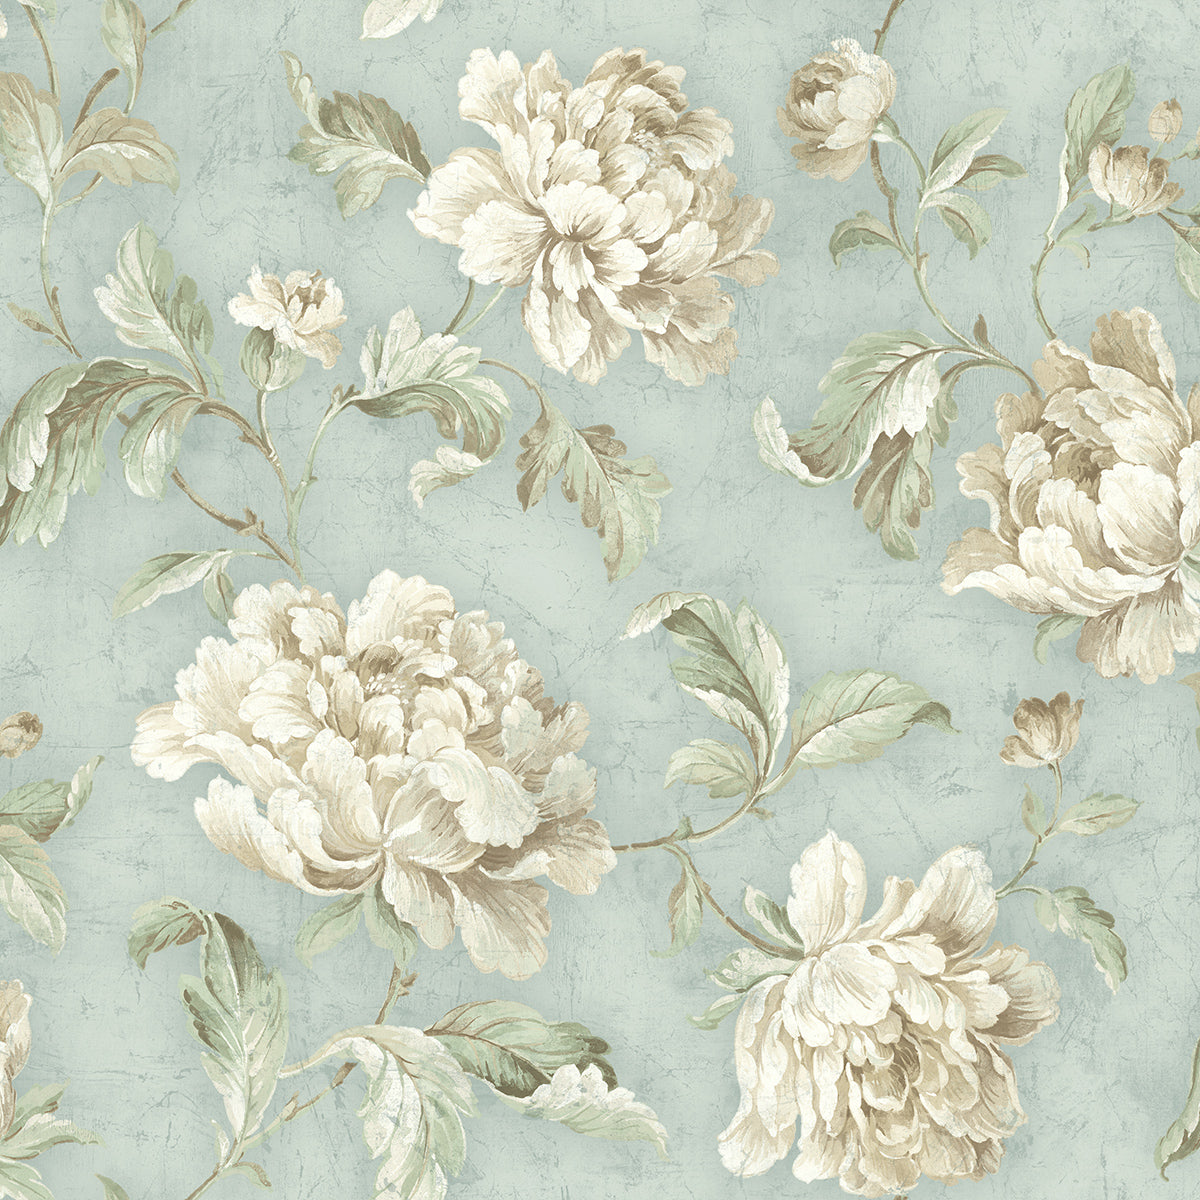 Vintage Floral Trail Wallpaper In Vintage Blue From The Vintage